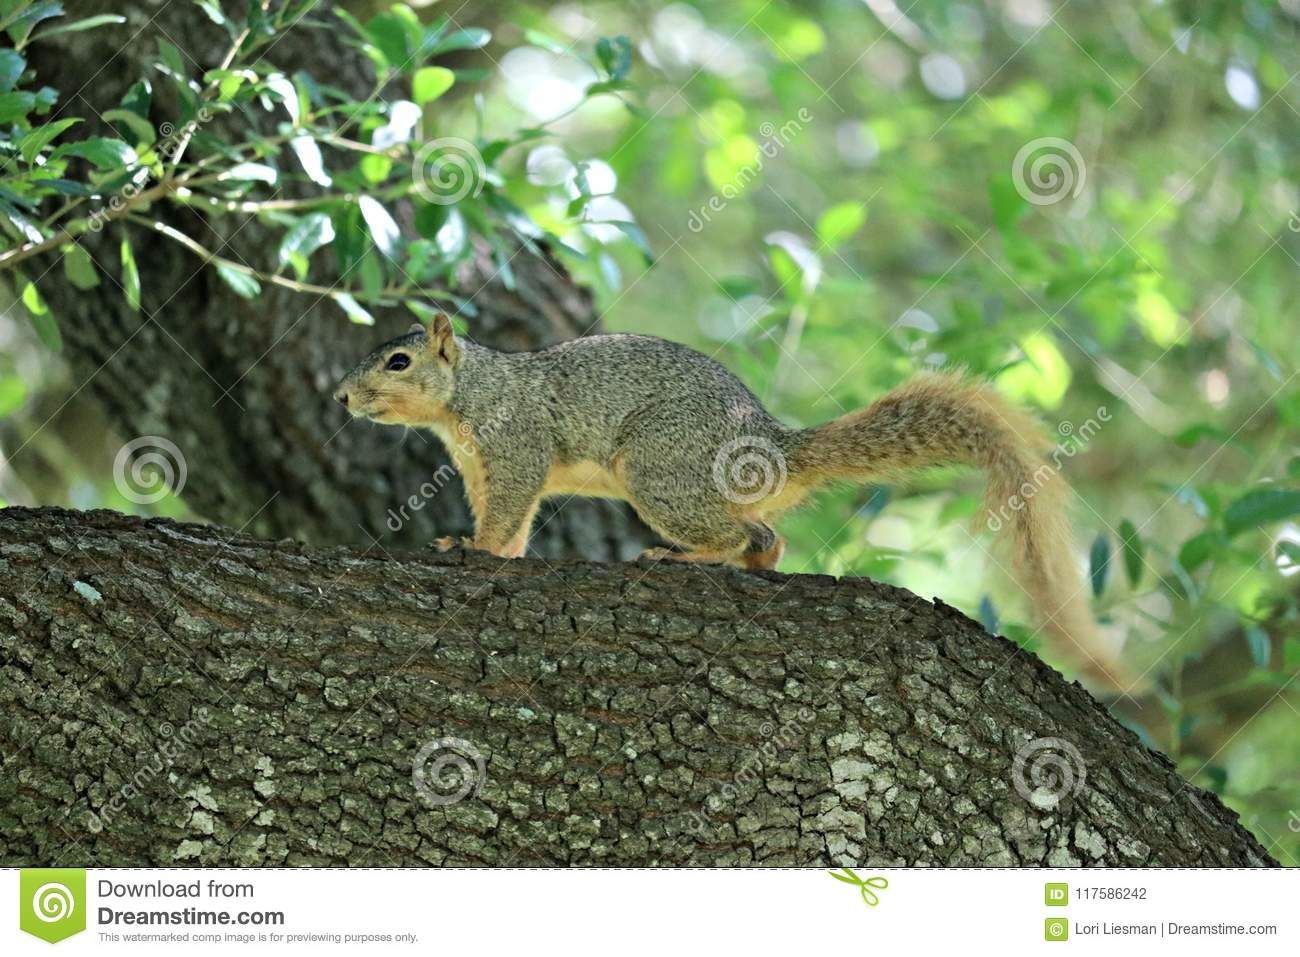 A fox squirrel on the branch of a large oak tree in a forest, near the park.